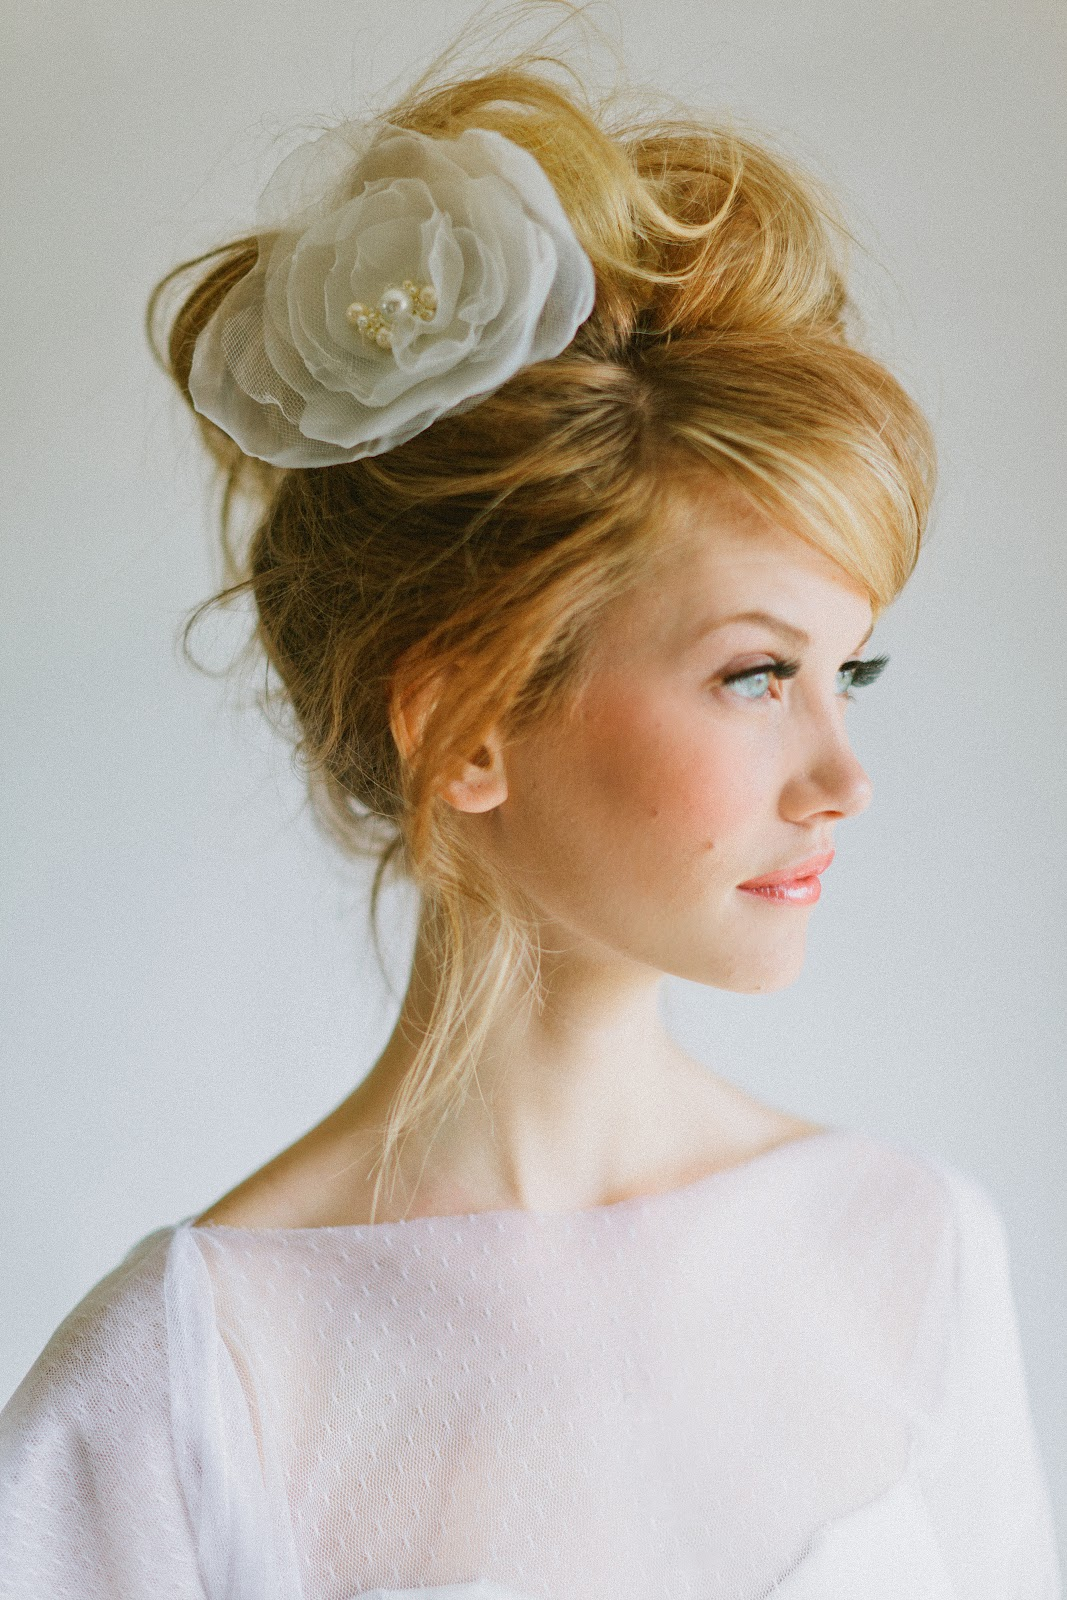 Wedding Hair And Makeup Ct Jonathan Edwards Winery: Hair And Make-up By Steph: 2012 Bridal Trends: #1